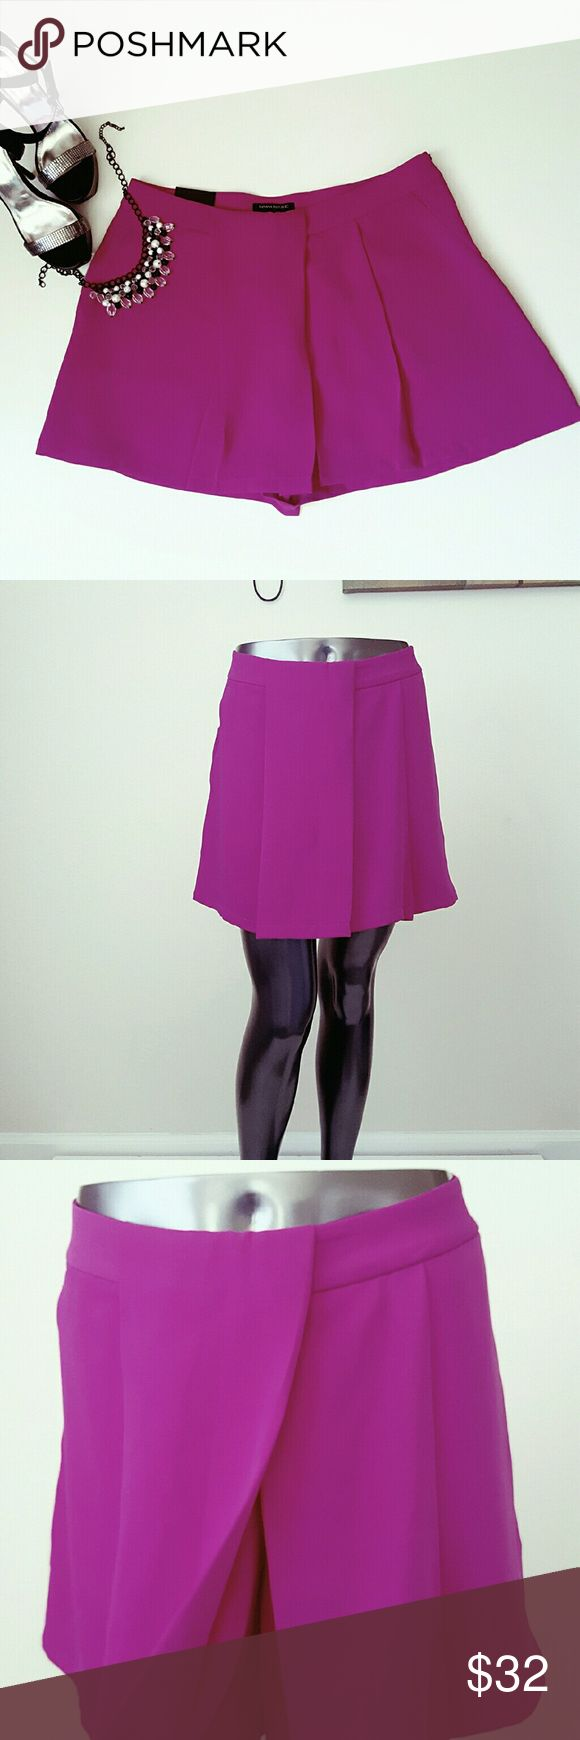 Banana Republic Fuschia Shorts These shorts feature Beautiful Fushia color  The shorts have two pleats down the middle that gives the look of a  skort Two sewn front side pockets  Inseam is 4 1/2  100 polyester Banana Republic Shorts